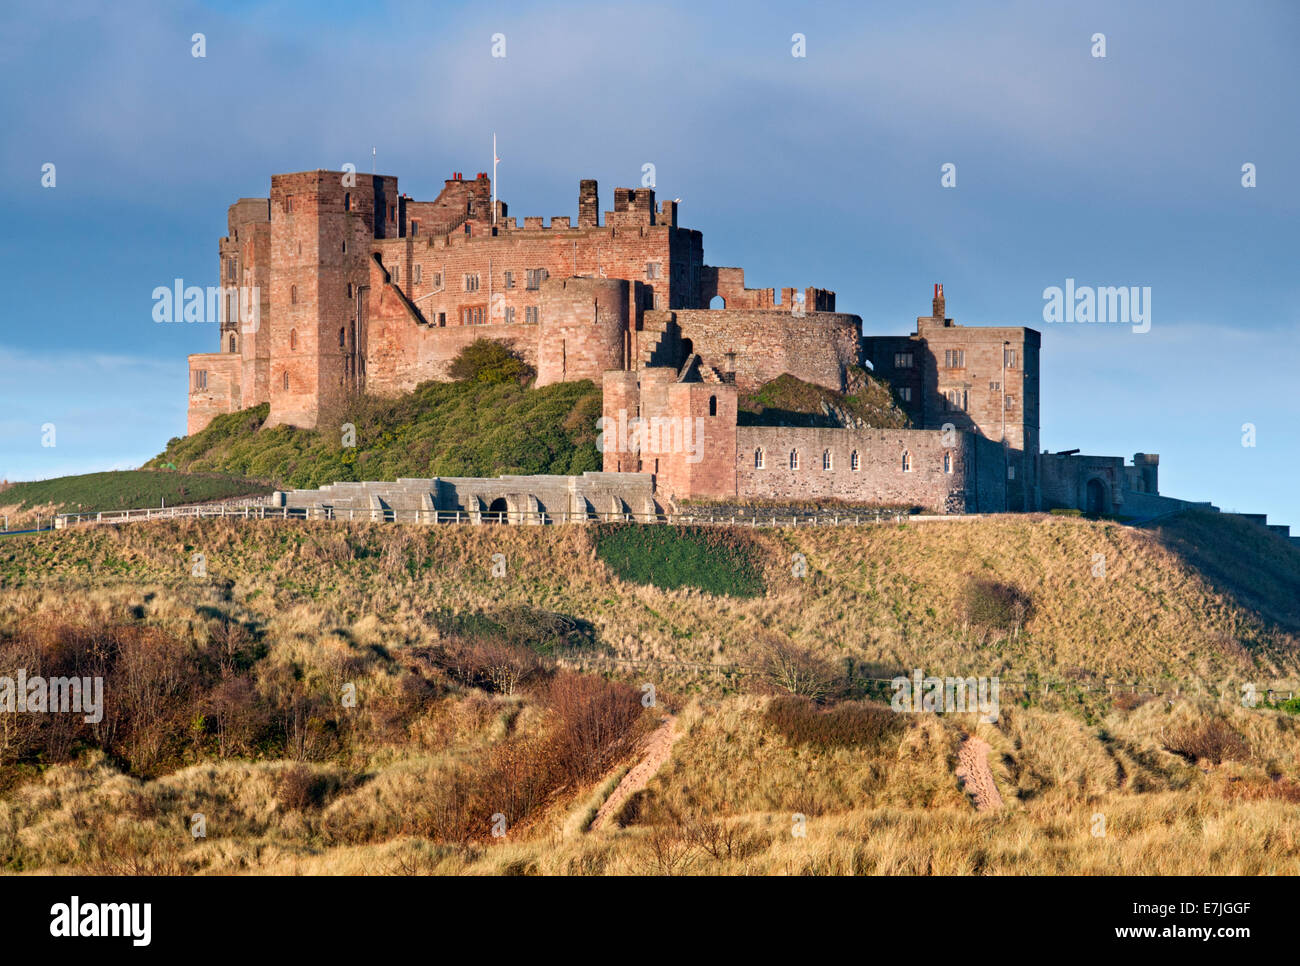 Bamburgh Castle, Bamburgh, Northumberland, England, UK - Stock Image